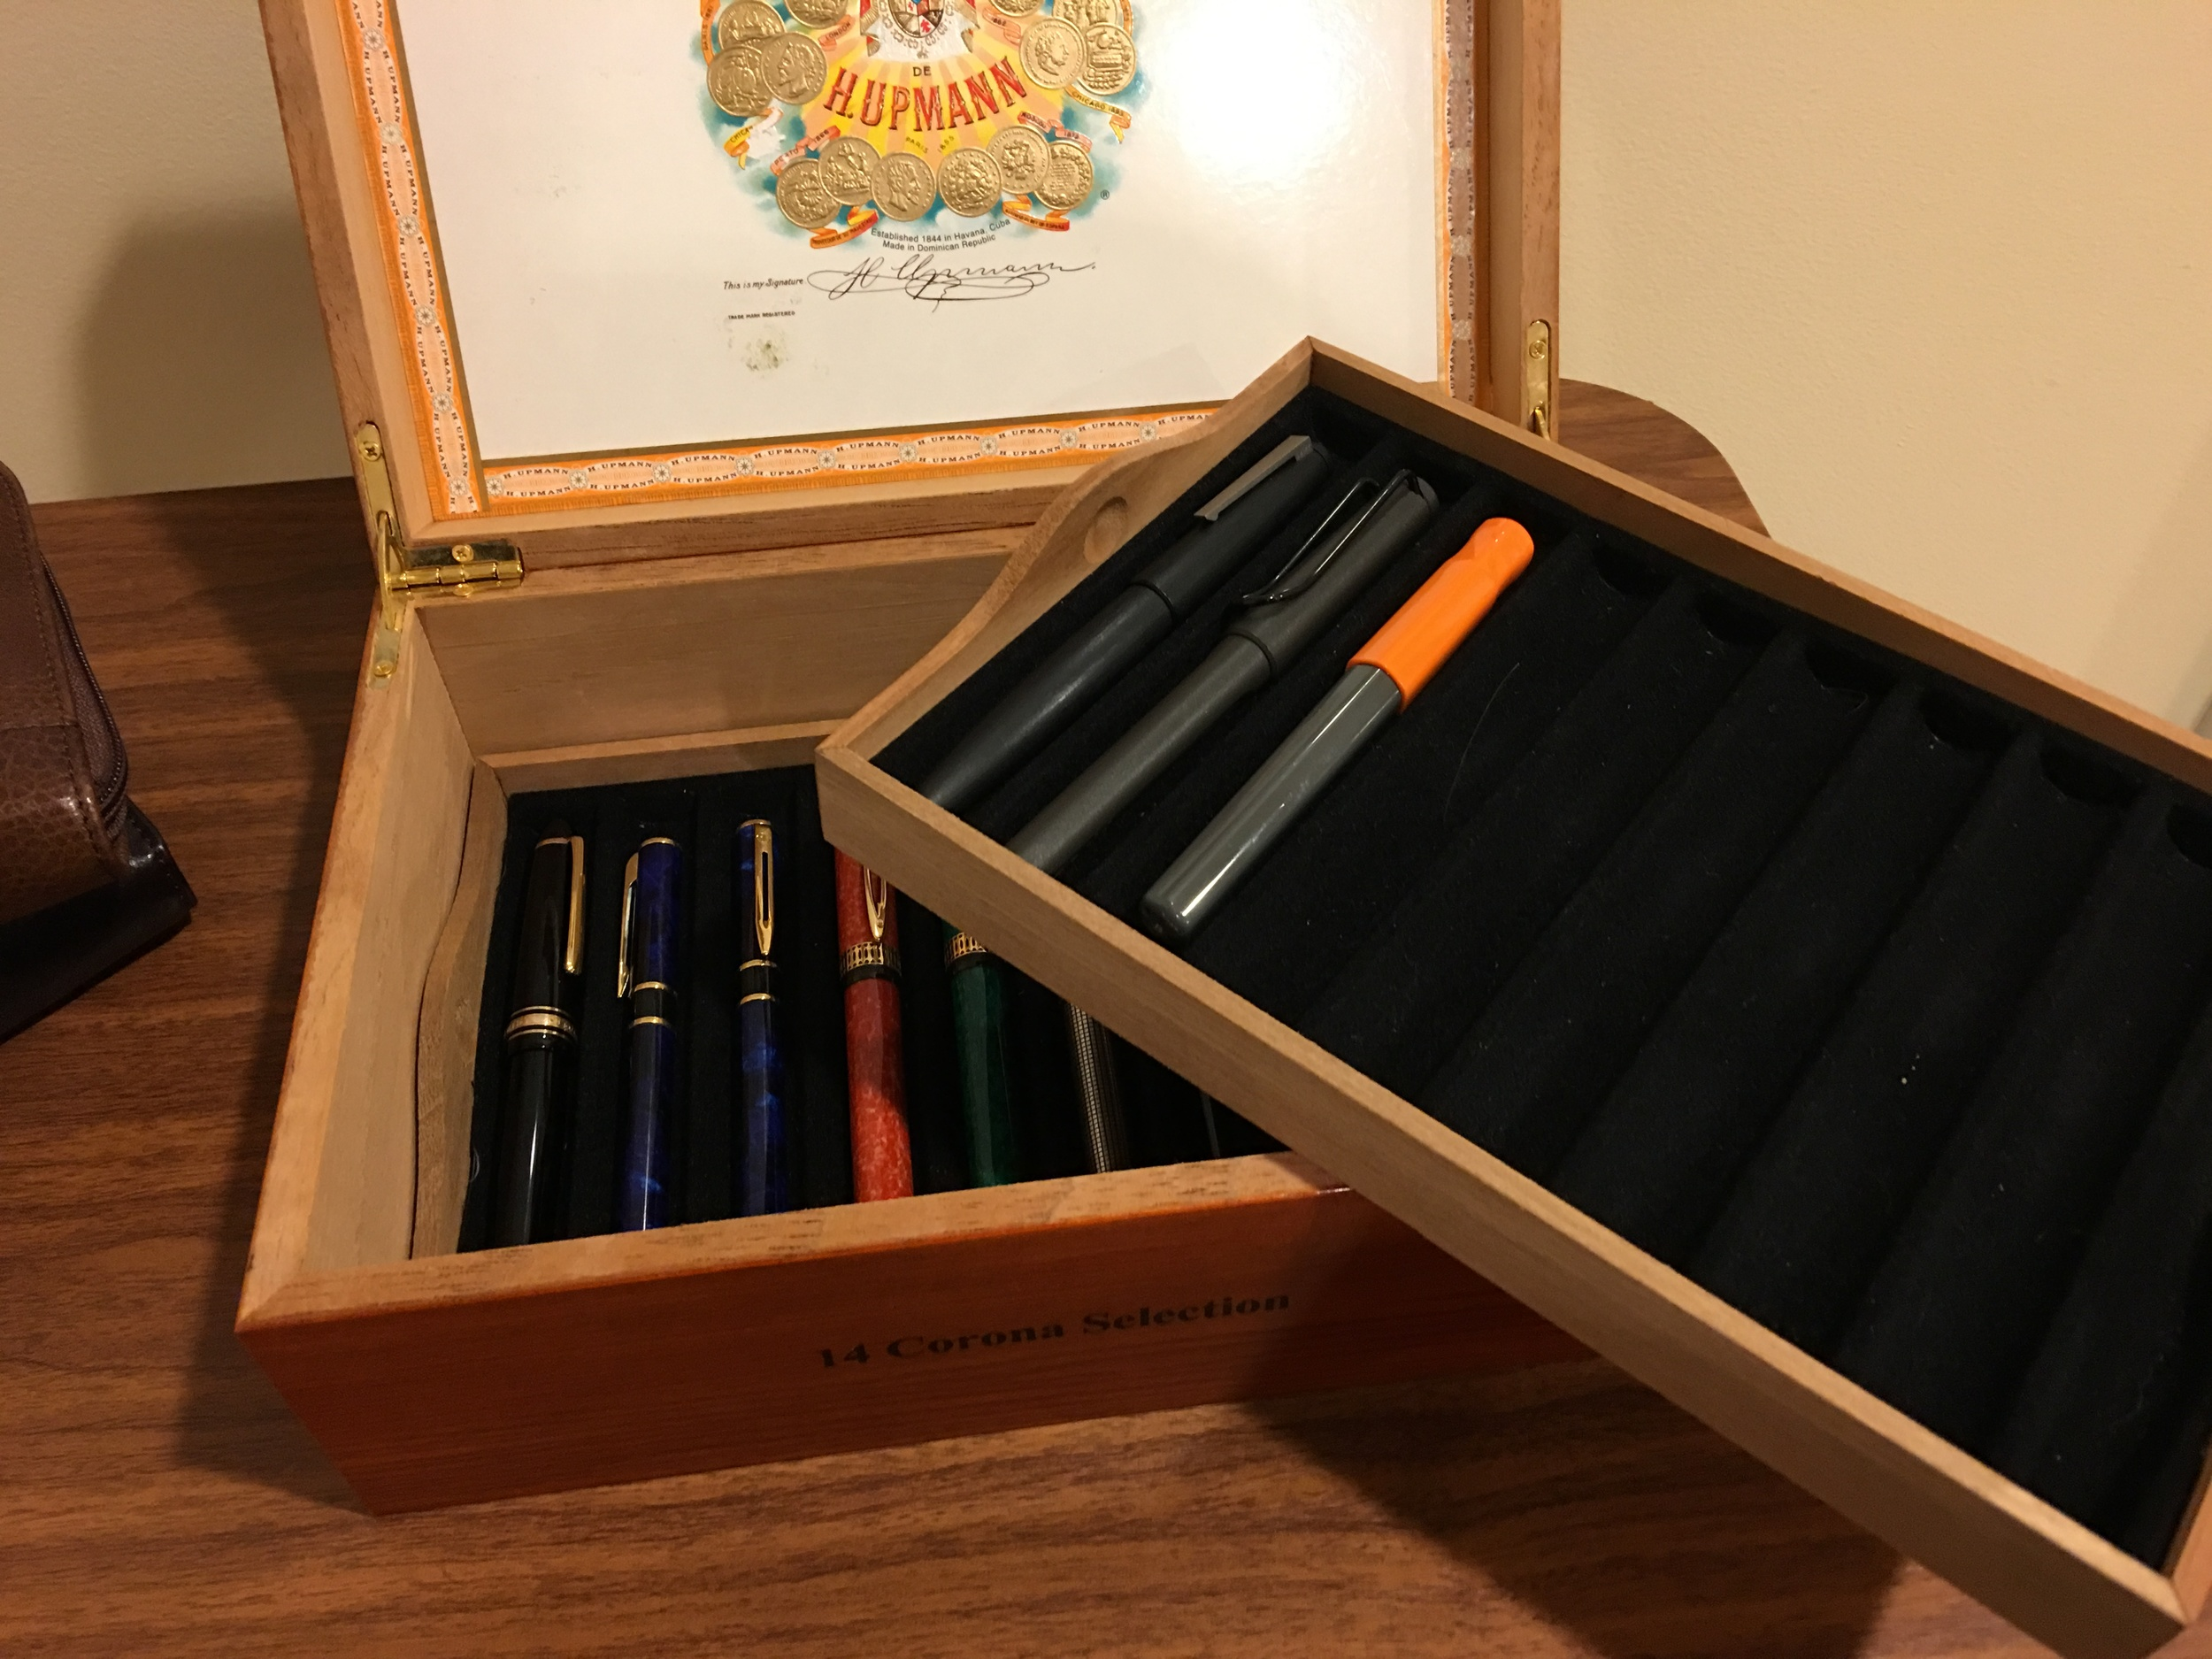 My homebrew cigar-box pen chest, made from an old H. Upmann cigar box.